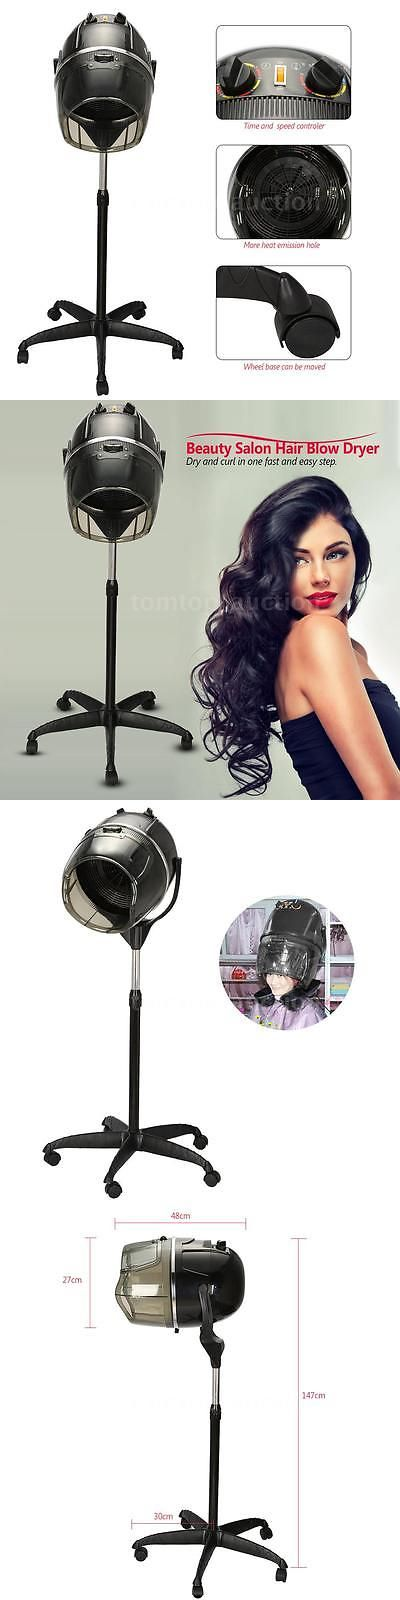 Hair Dryers: Pro Rolling Stand Salon Hair Blow Dryer Bonnet Hood Base Hair Dryer Timer H9m2 -> BUY IT NOW ONLY: $74.99 on eBay!